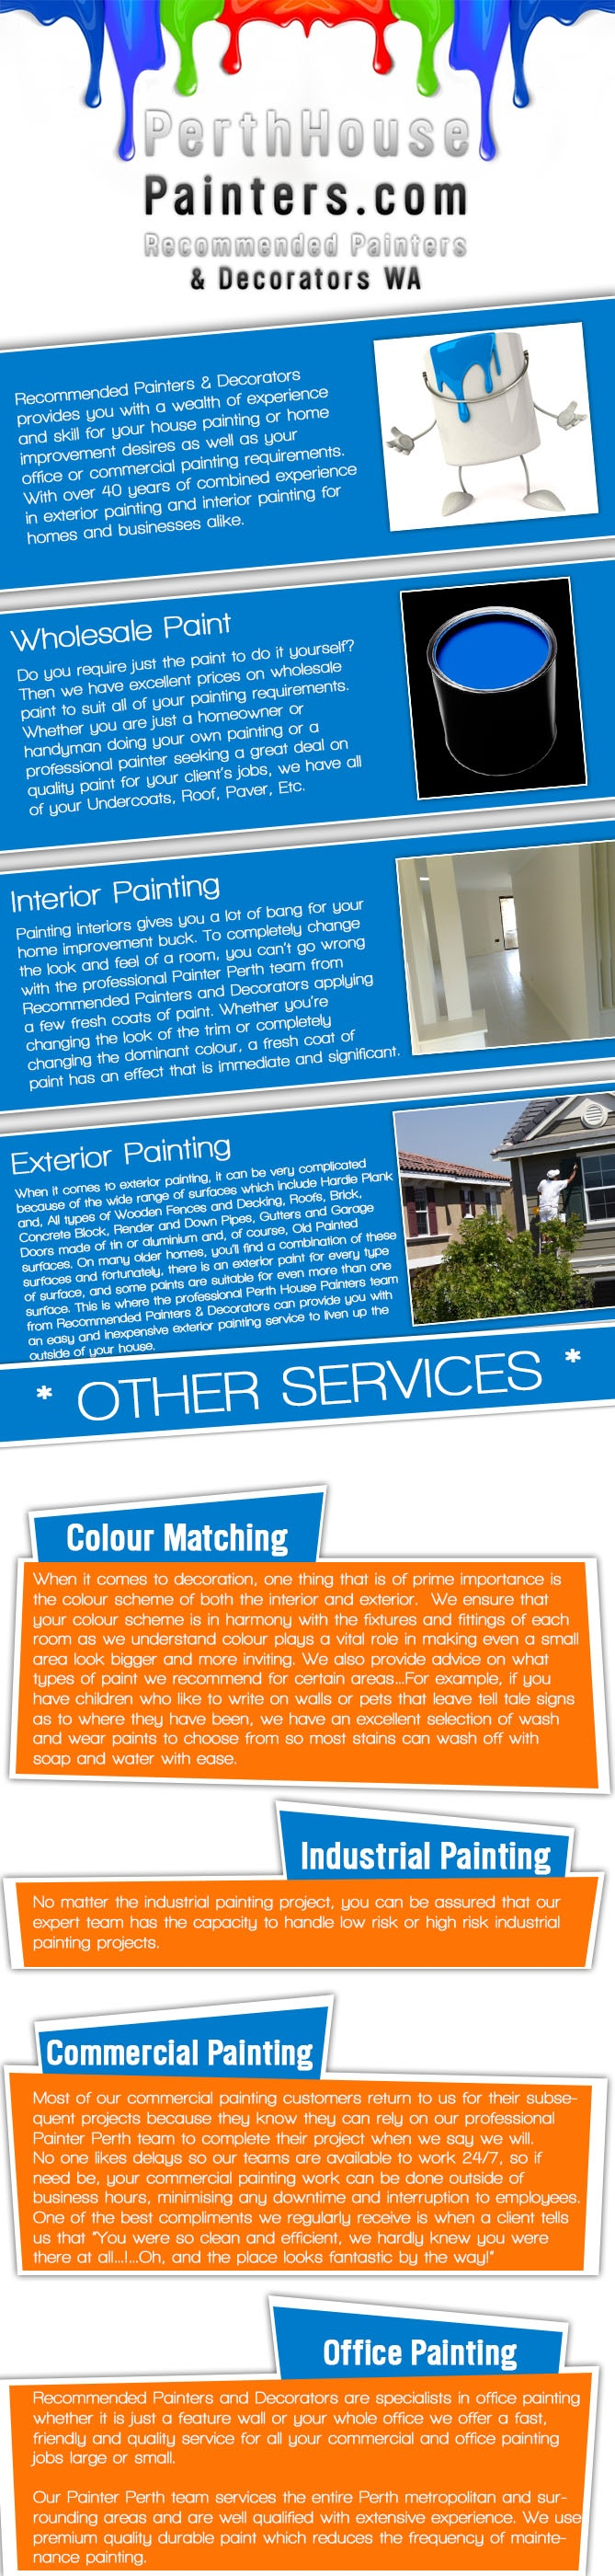 Know more about www.PerthHousePainters.com and its services. #perth #house #painters